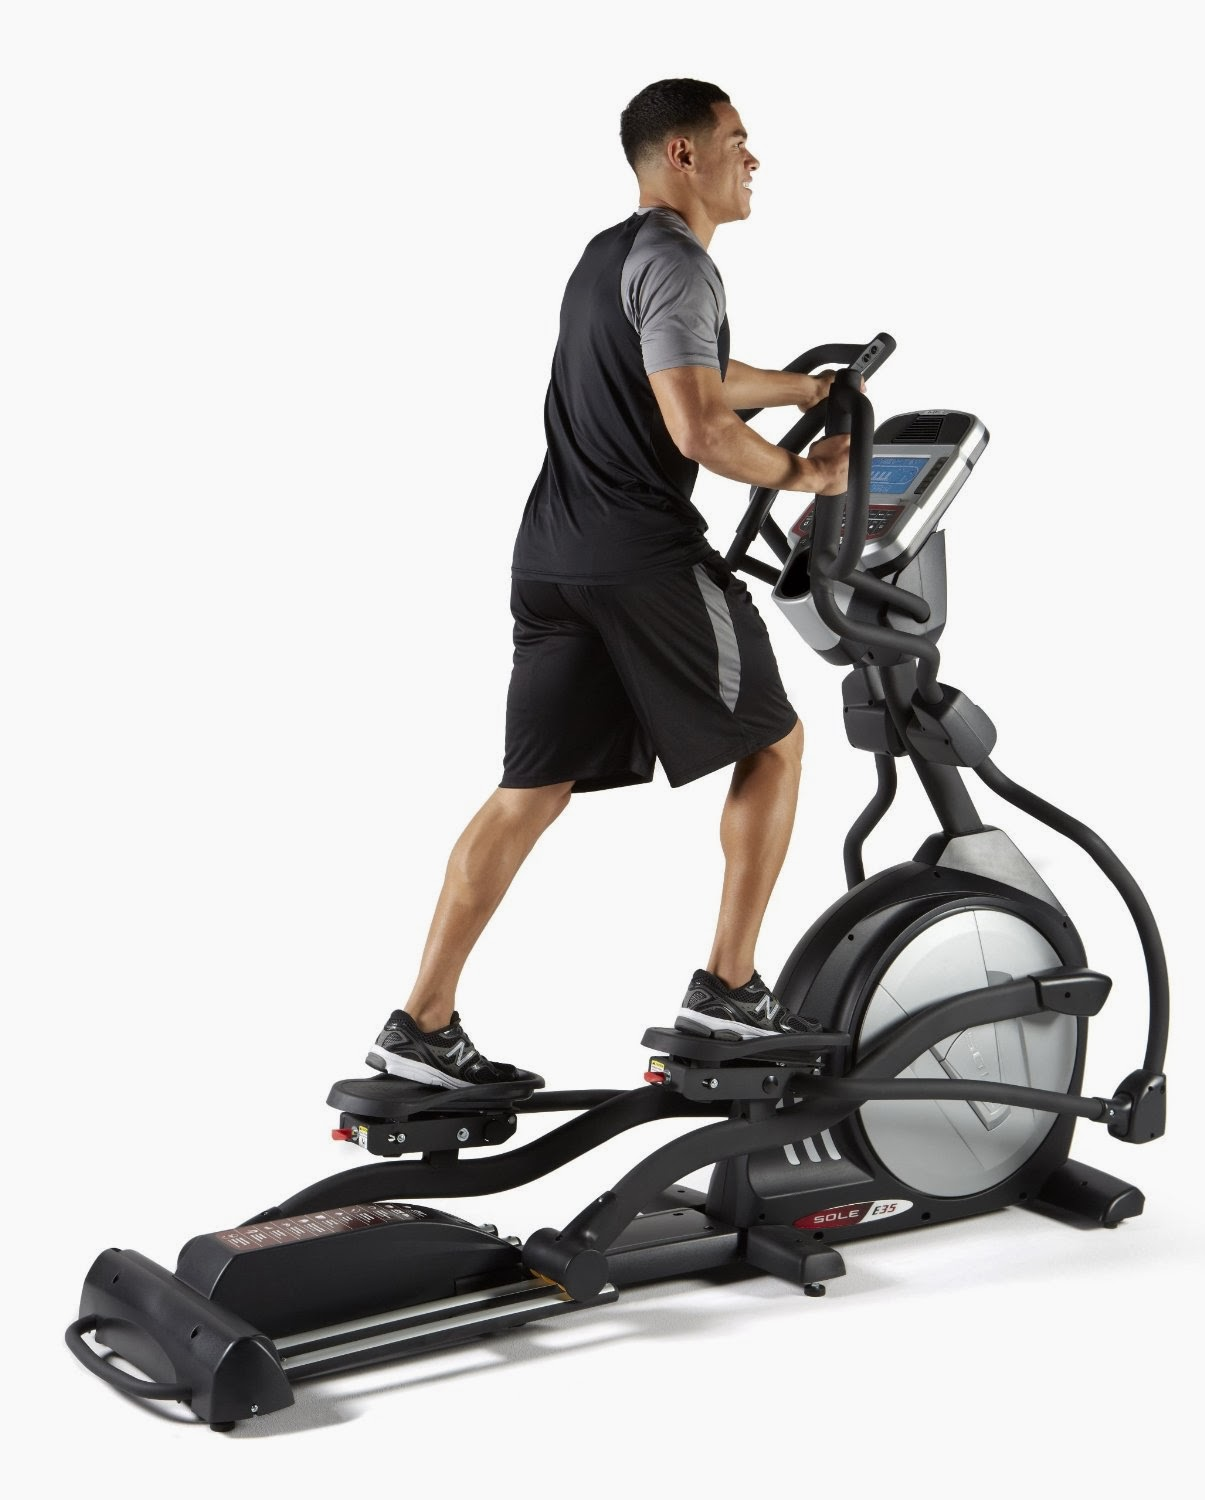 Sole E35 Elliptical Trainer Machine, picture, review features & specifications, compare with Sole E95